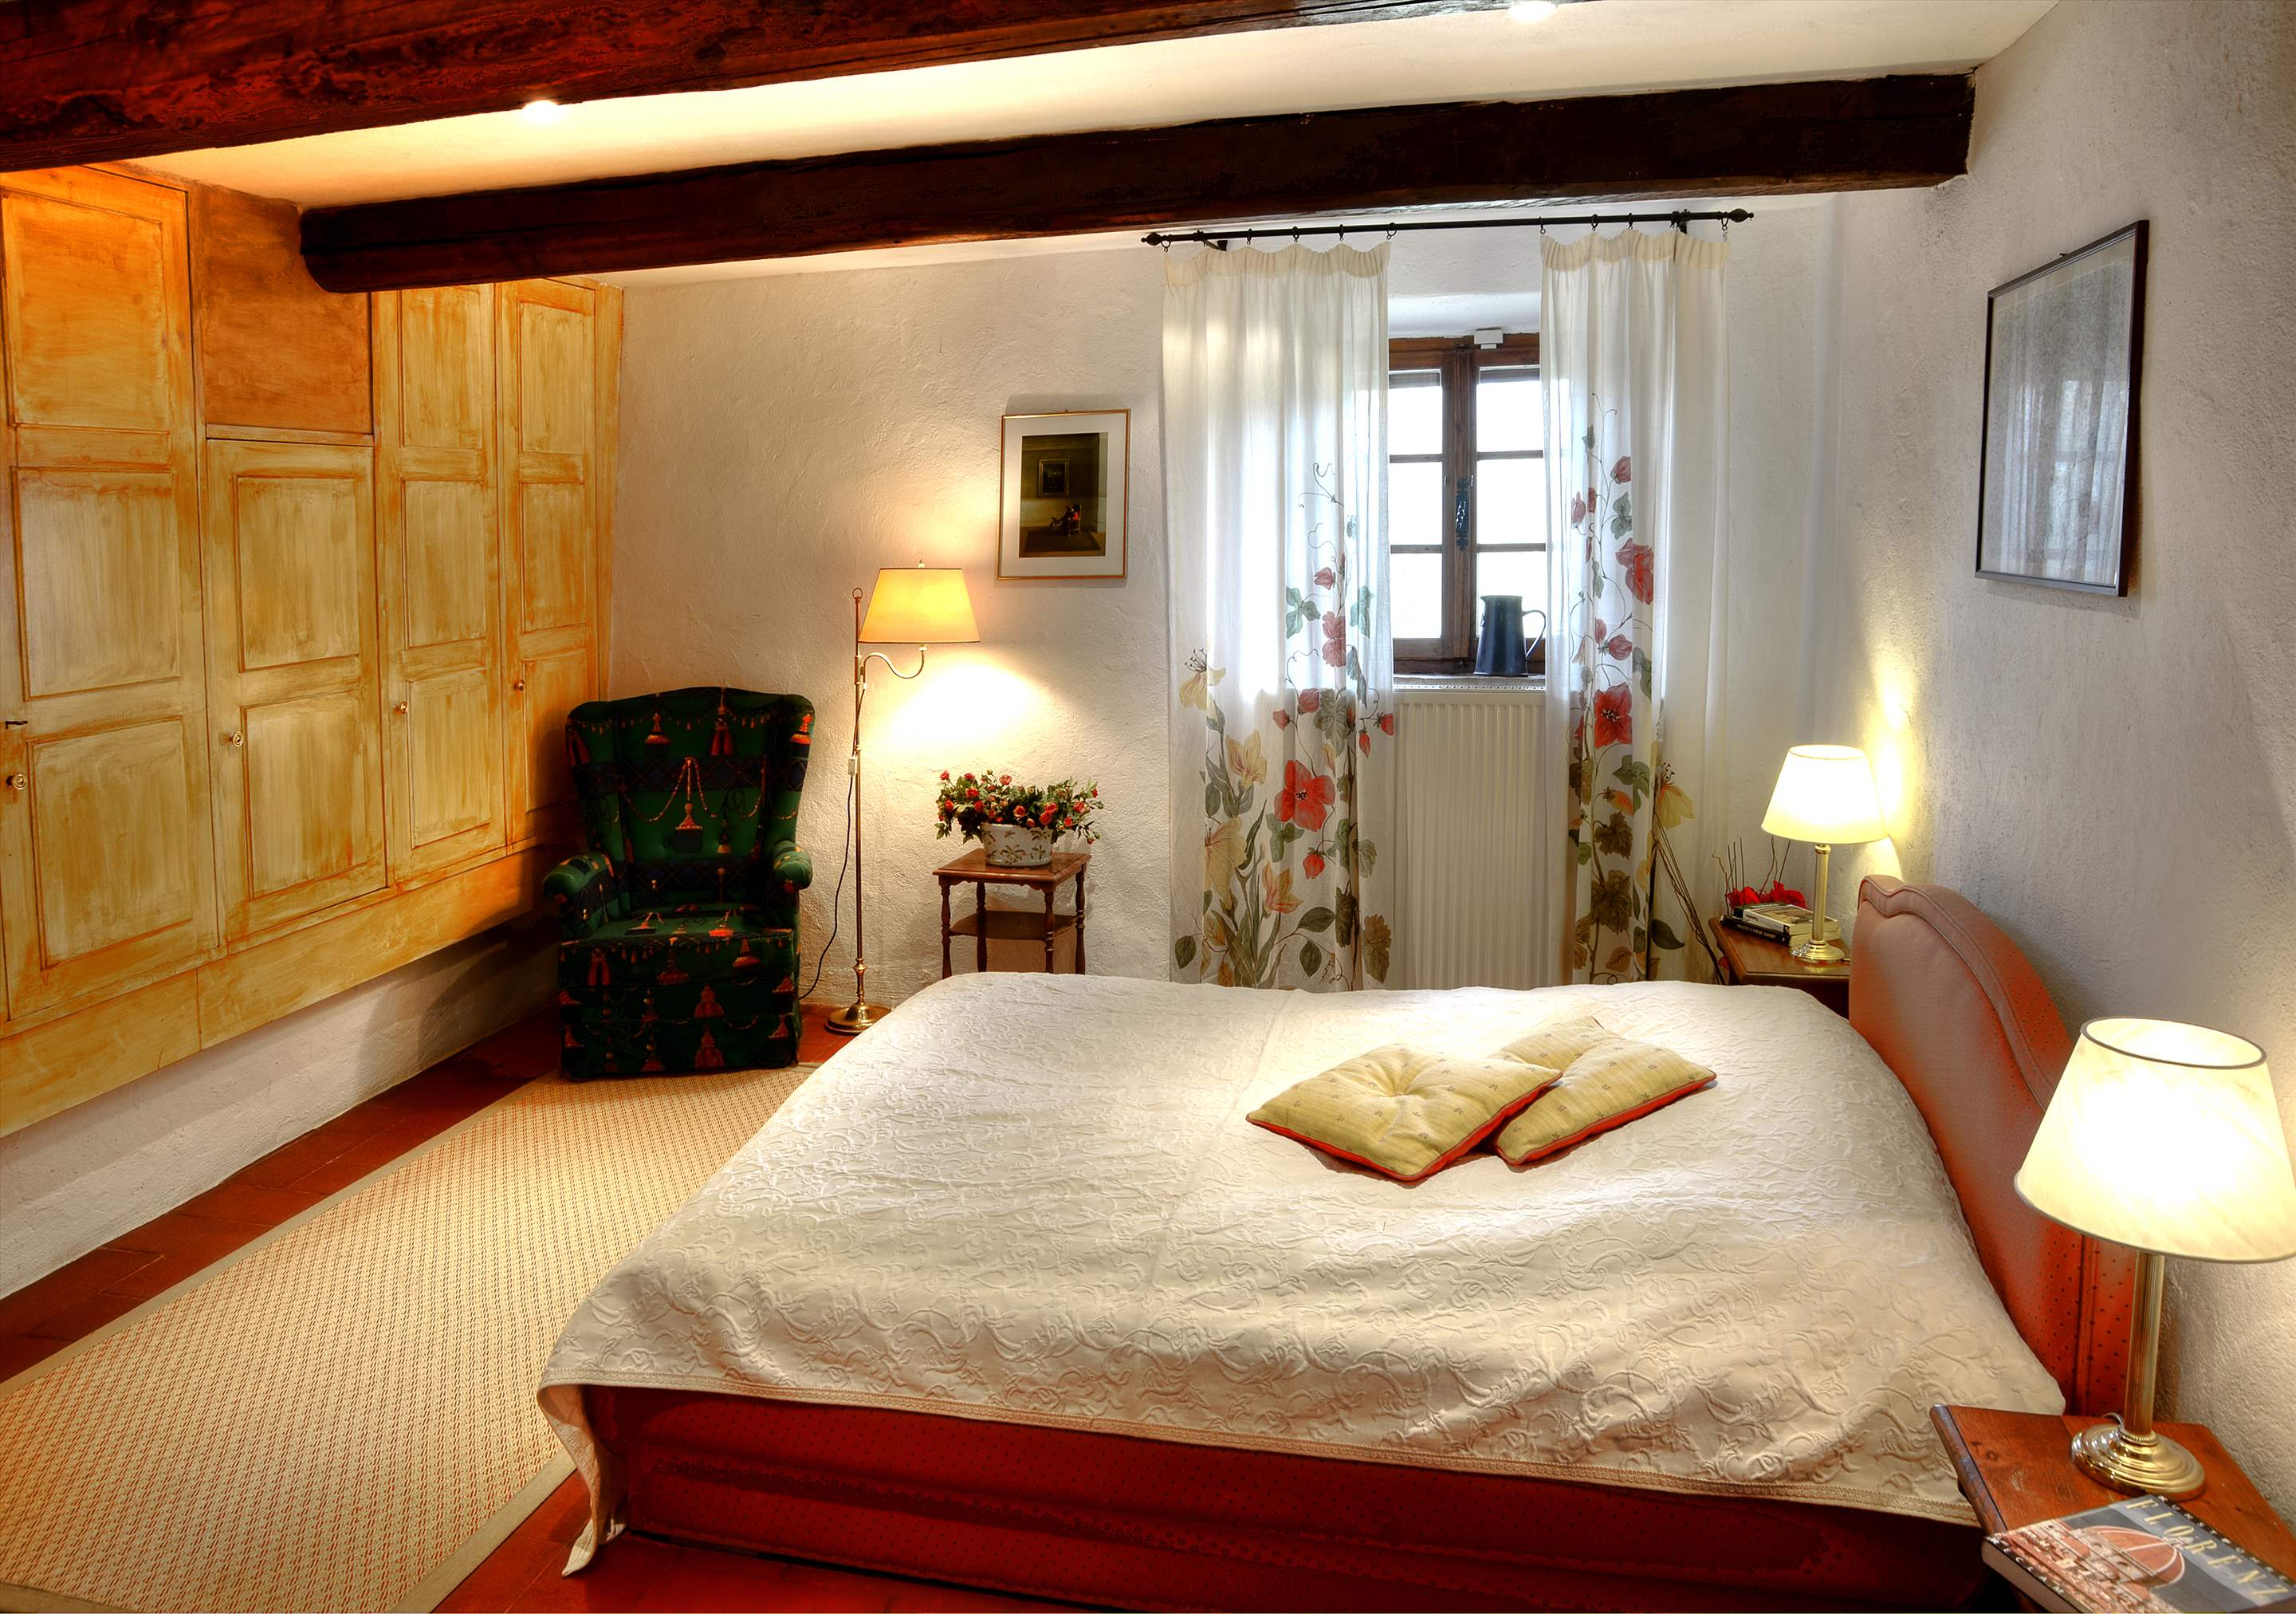 Villa Campana, 5 bedroom villa in Chianti & Countryside, Tuscany Photo #17